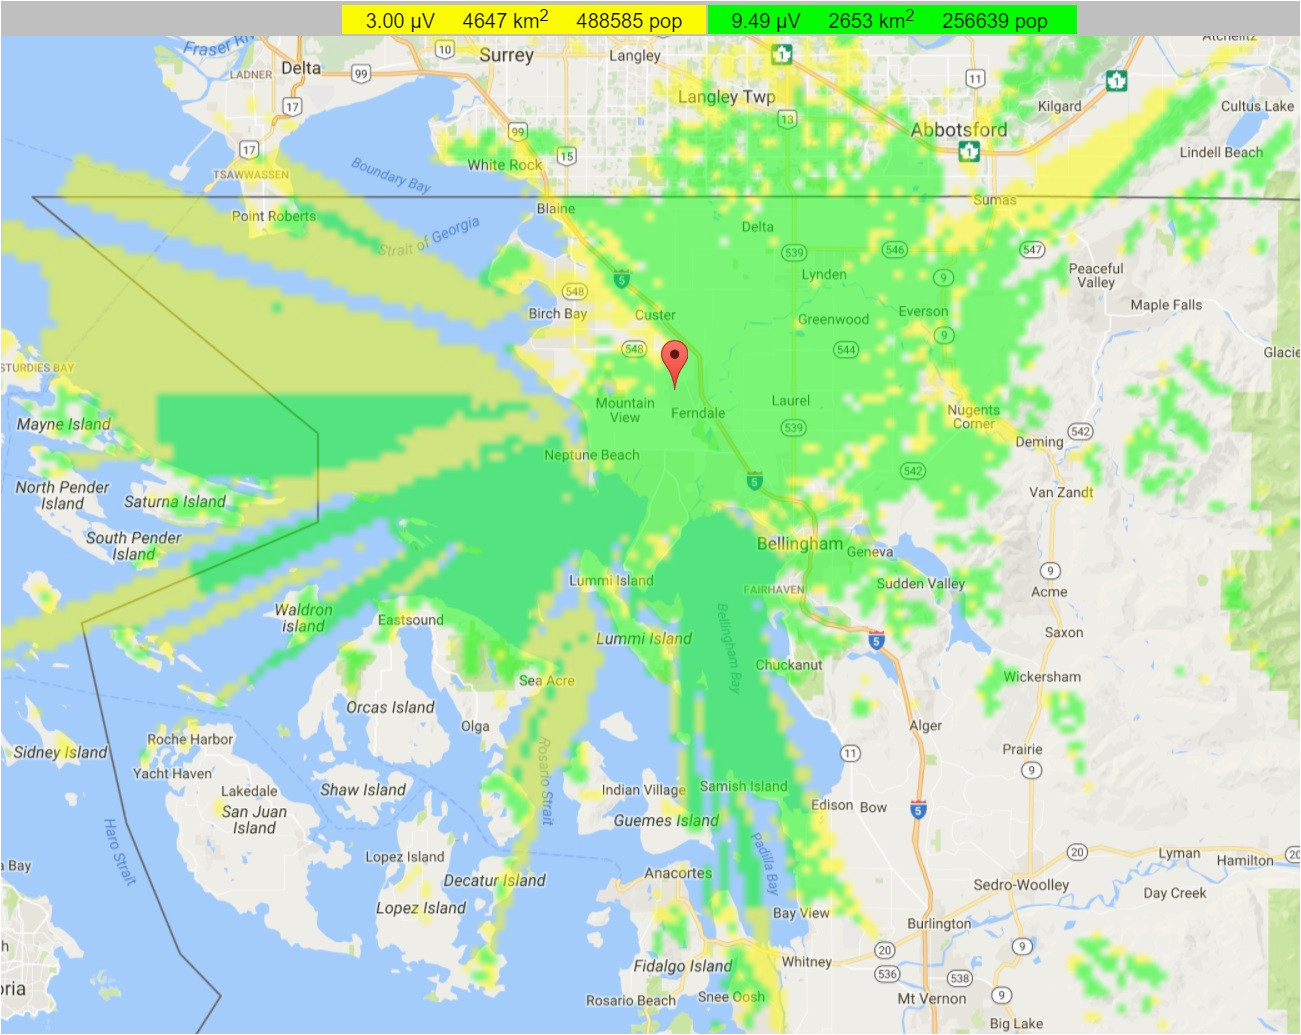 pnw pacific northwest dmr repeater listing page